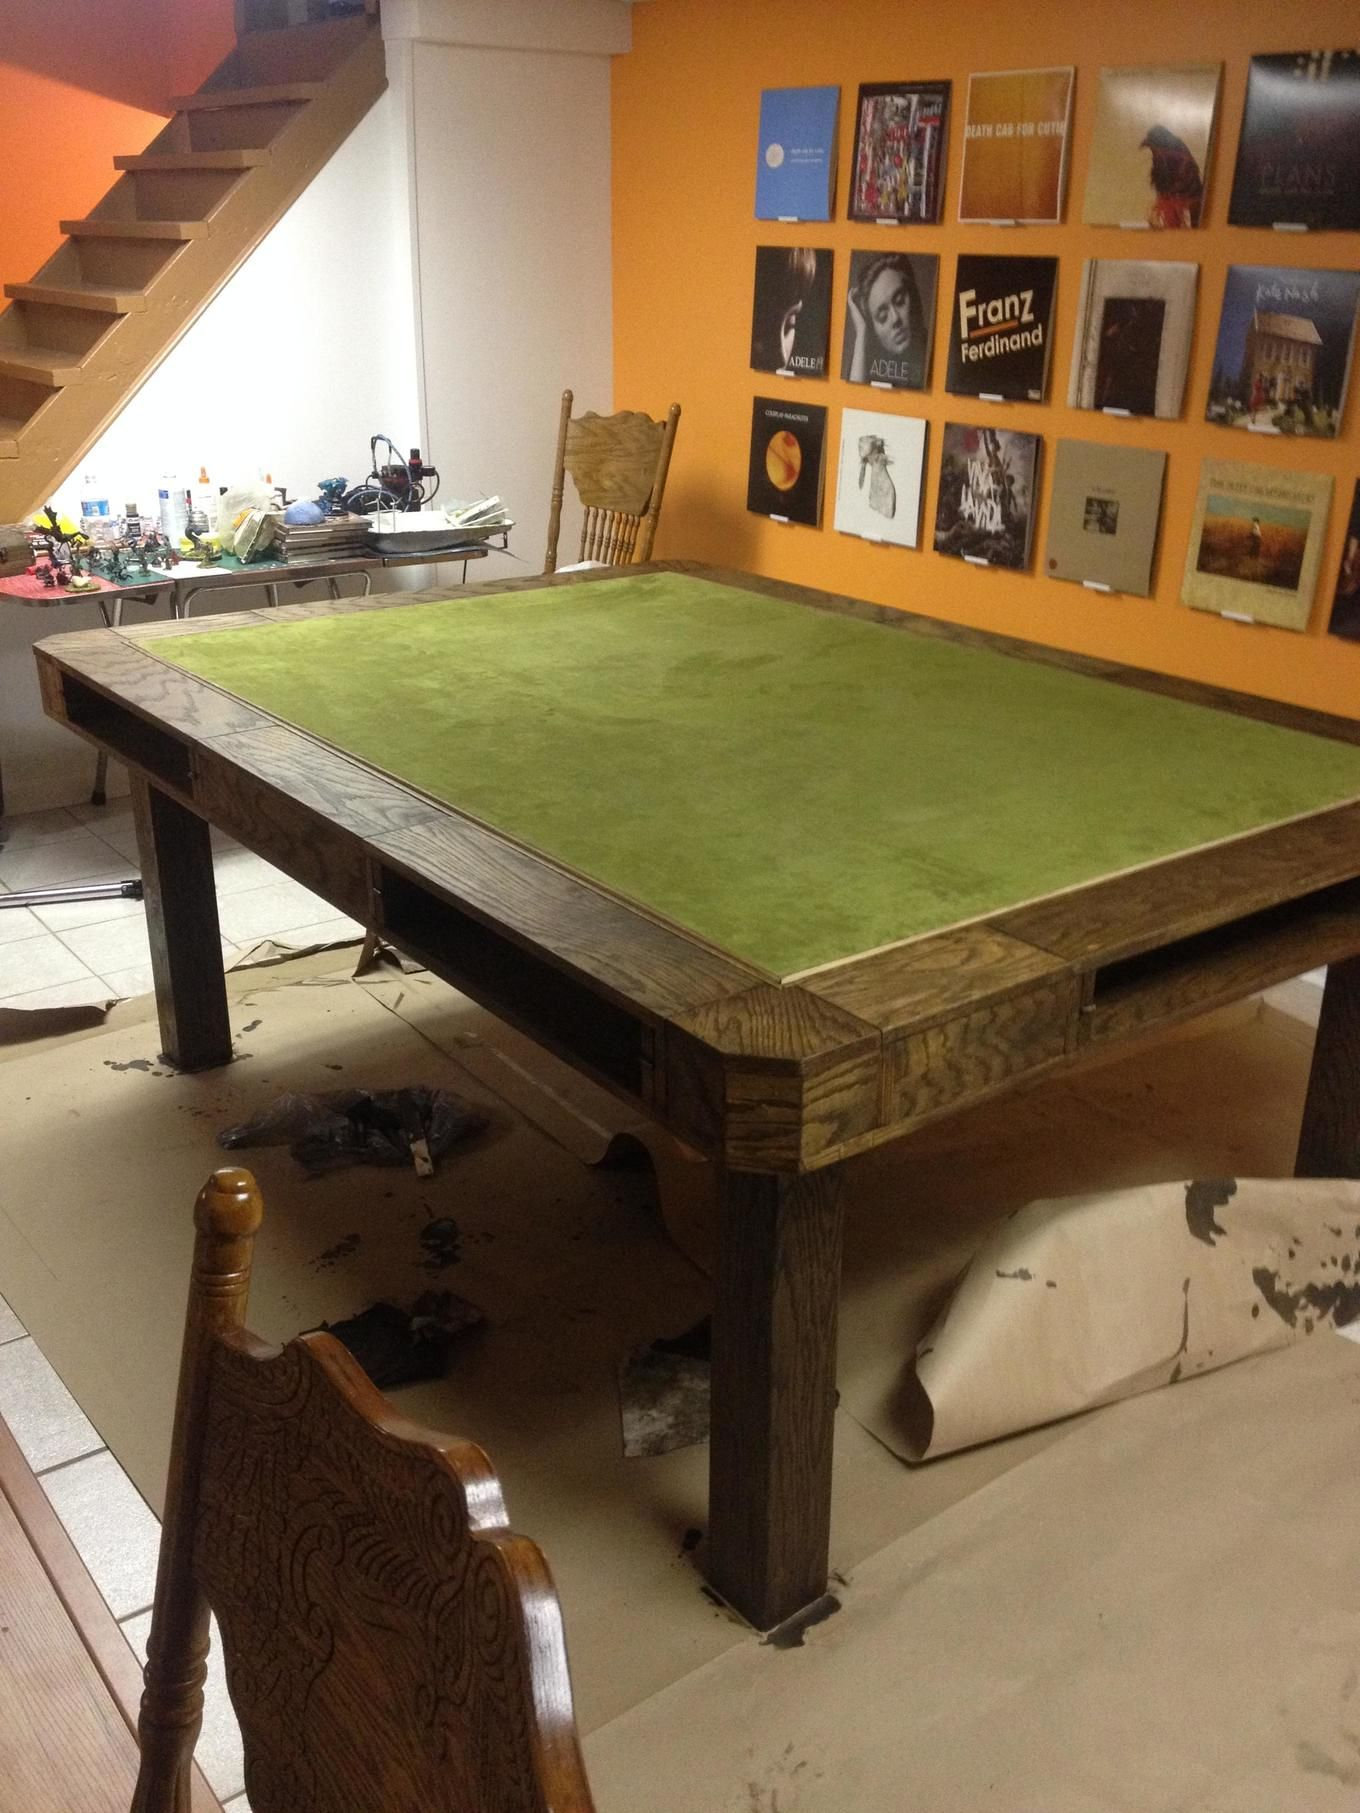 The Game Table Board Game Table Table Games Rpg Table